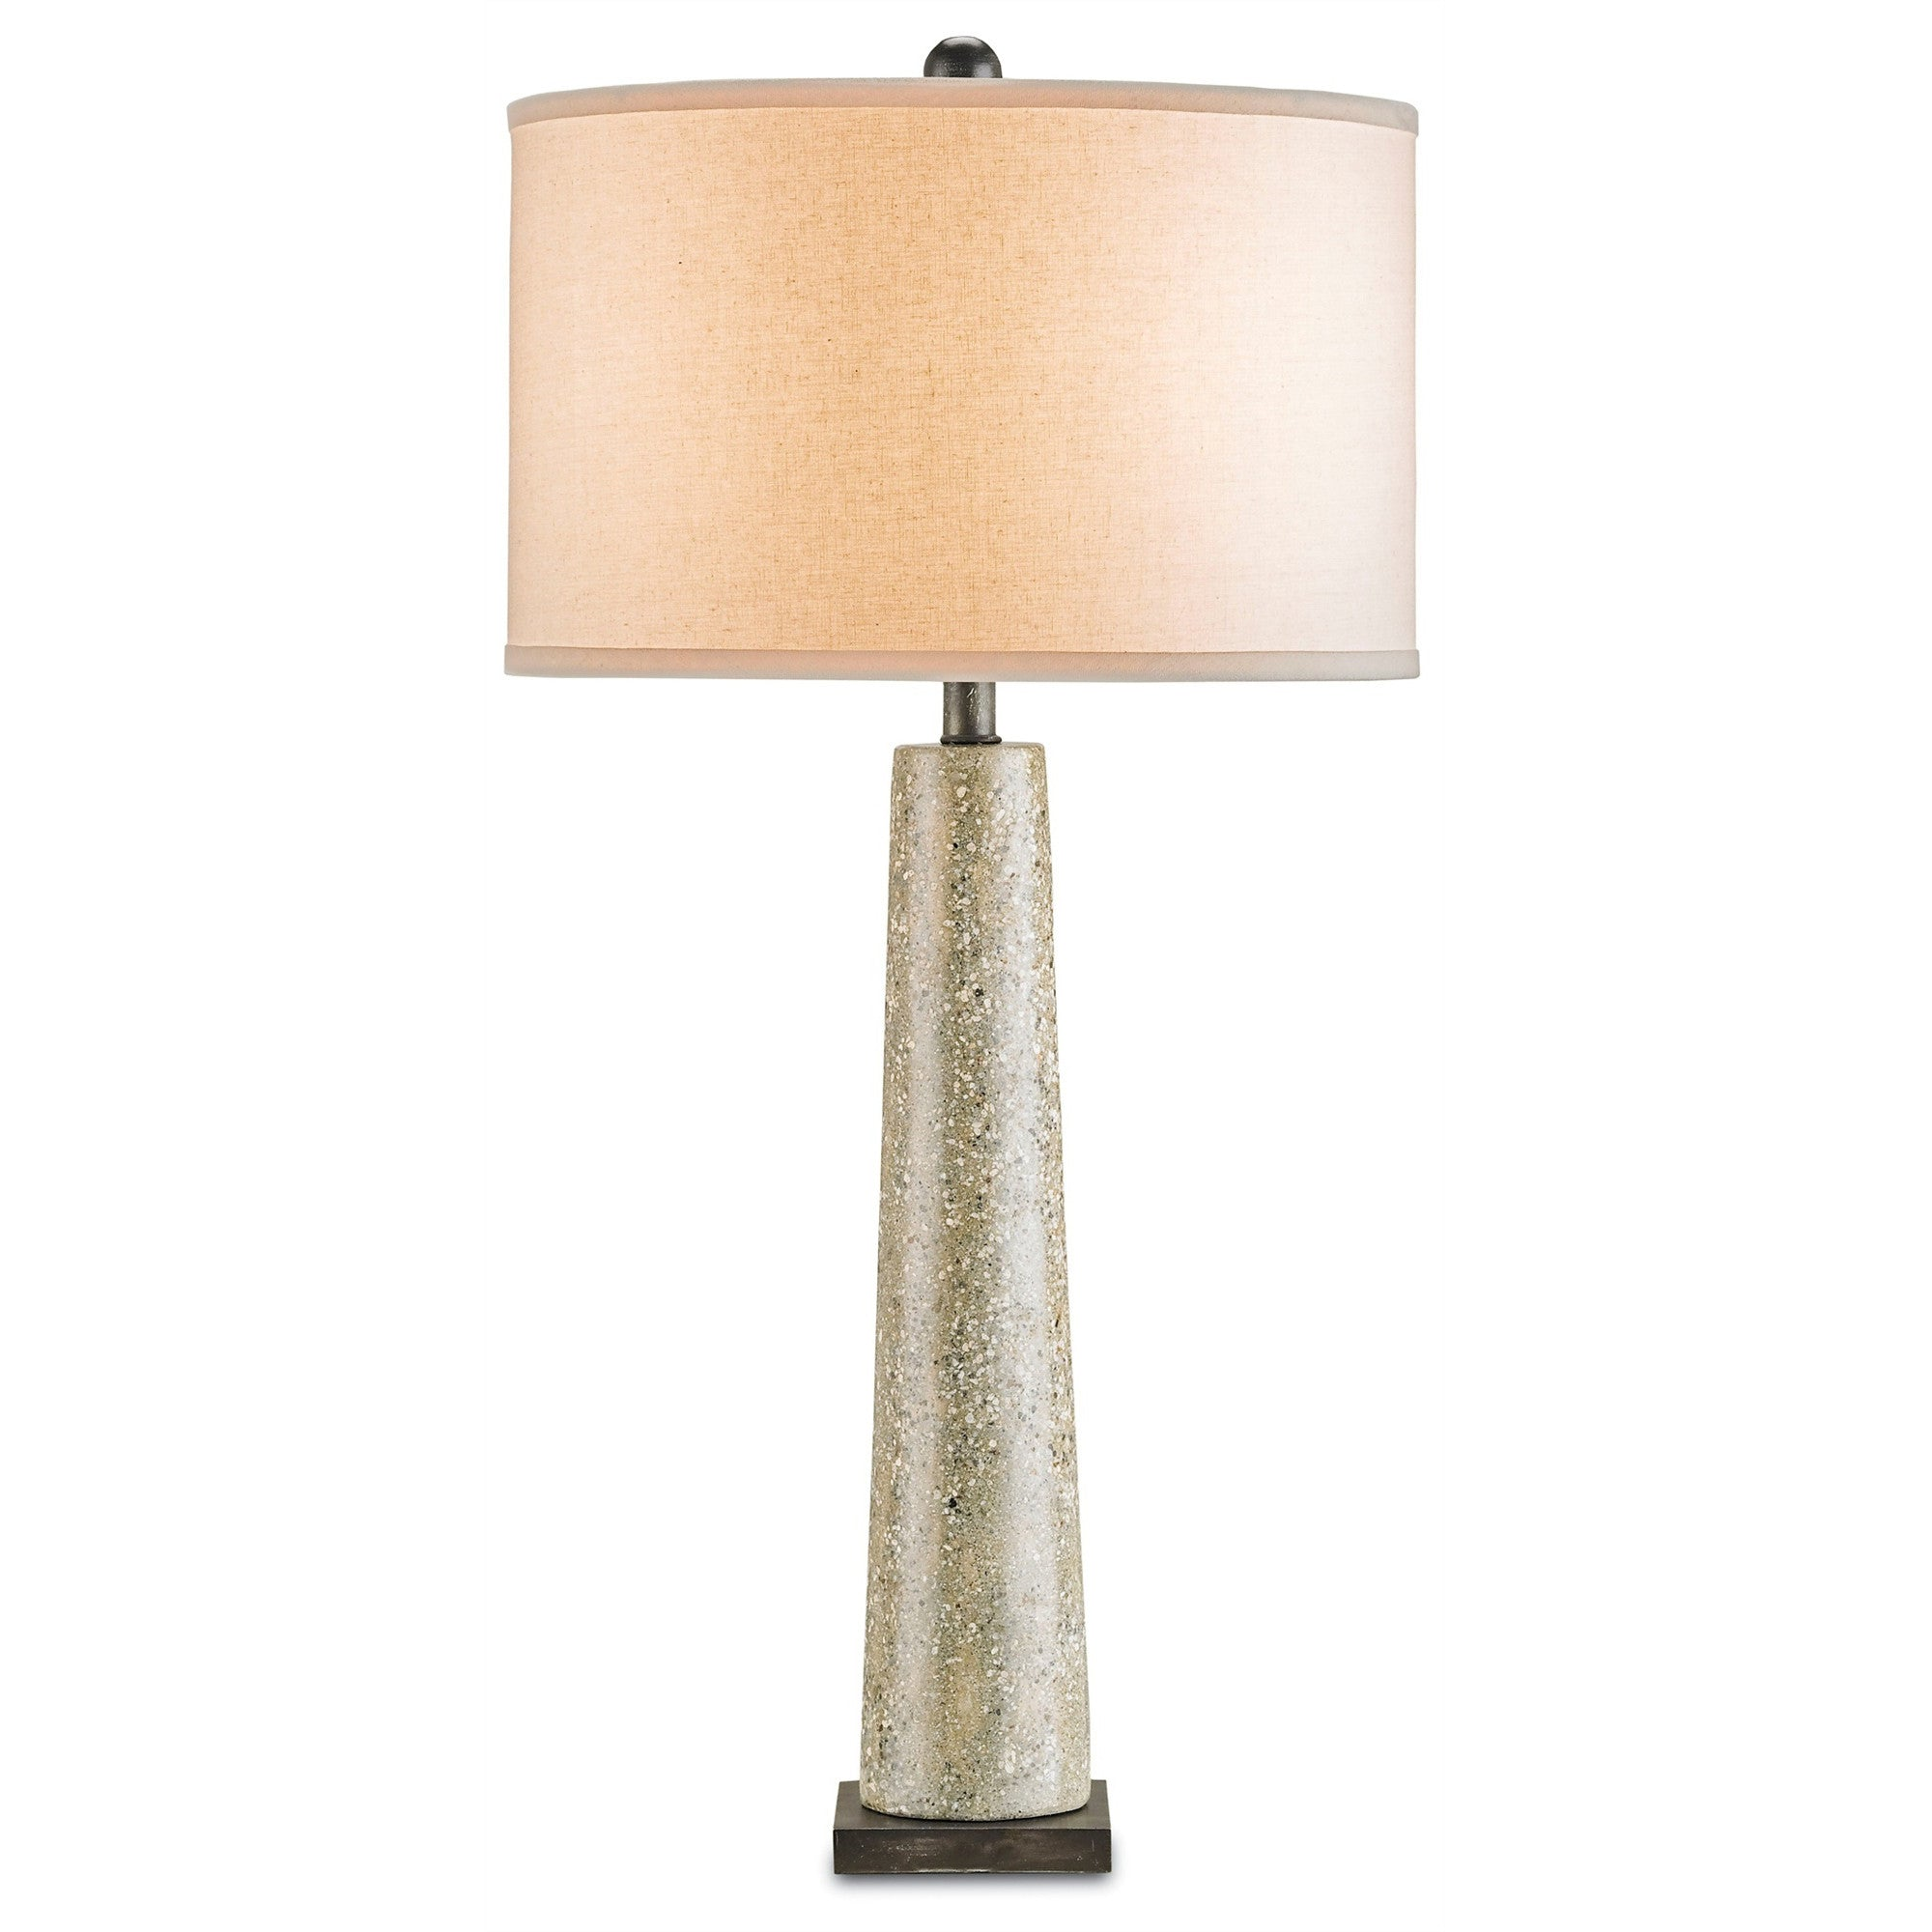 Currey and Co - Epigram Table Lamp